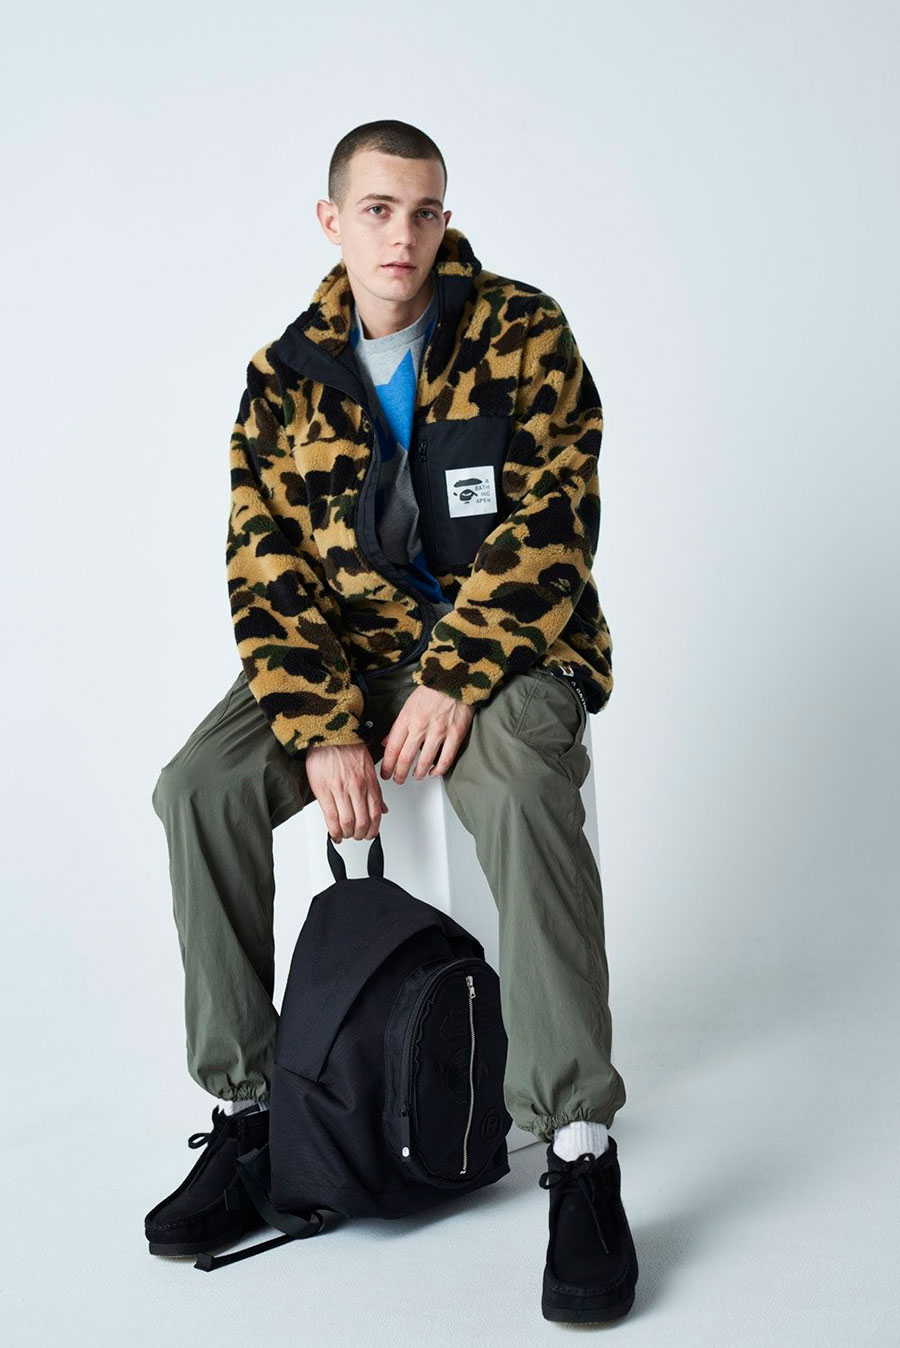 潮牌 A BATHING APE® 发布 2020 最新秋冬男装搭配造型 Lookbook插图(13)